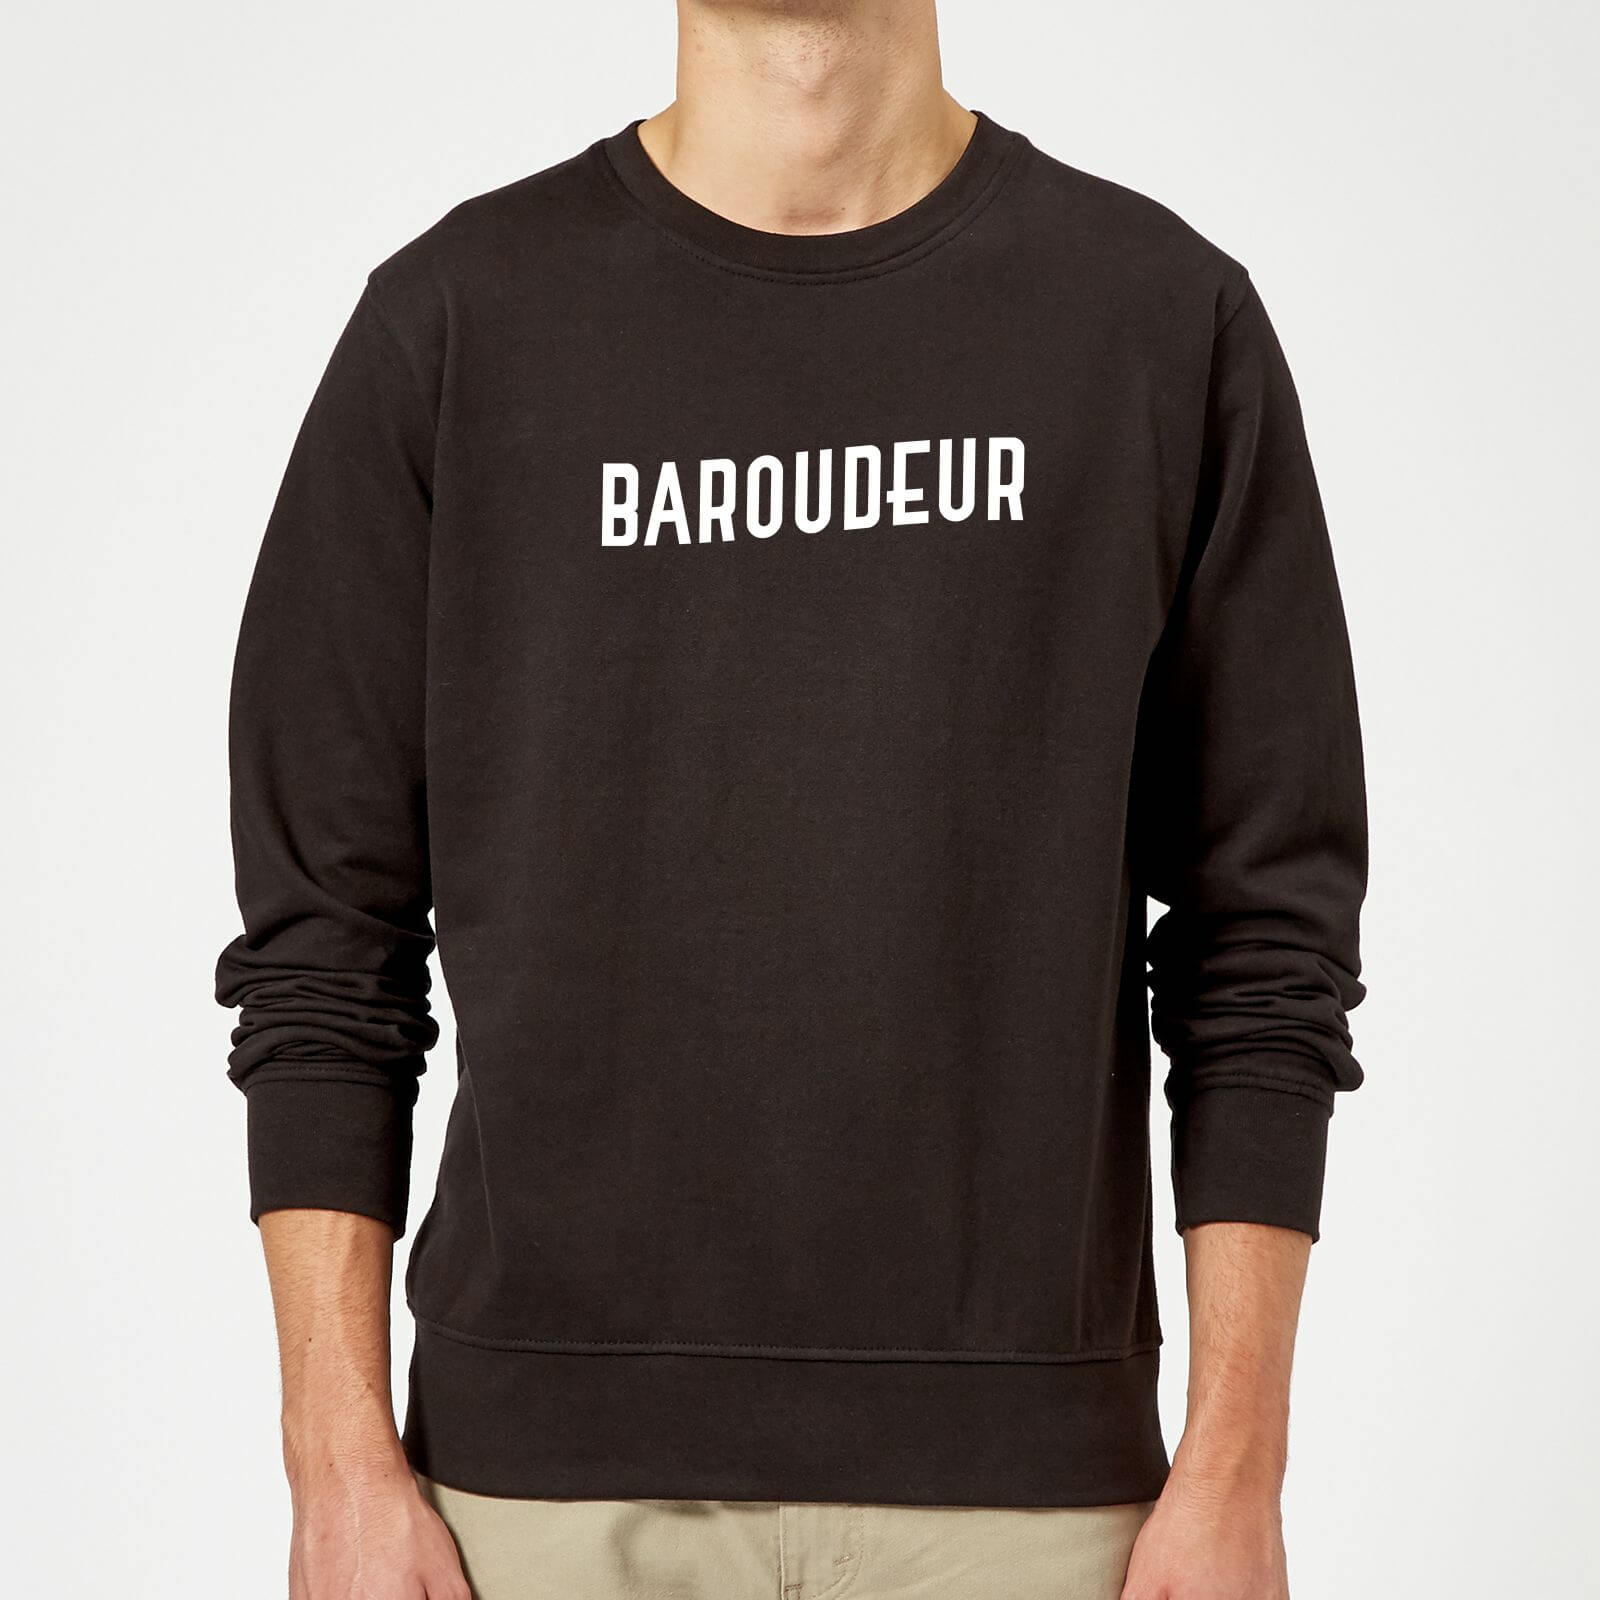 Baroudeur Sweatshirt - XL - Grey